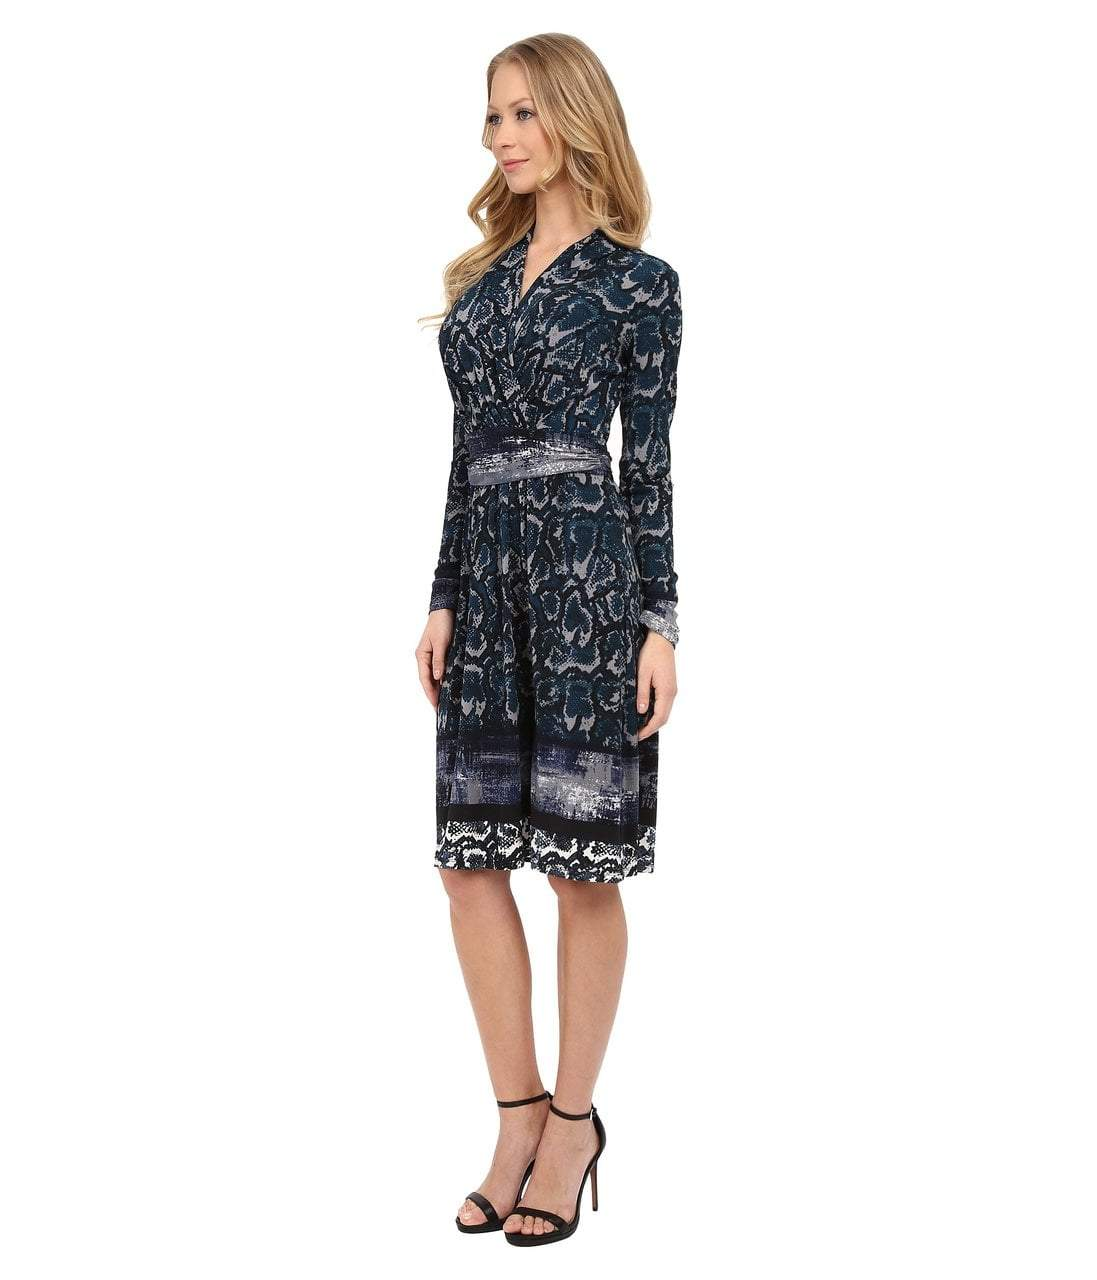 Adrianna Papell - Printed V-Neck Dress 15246570 in Print